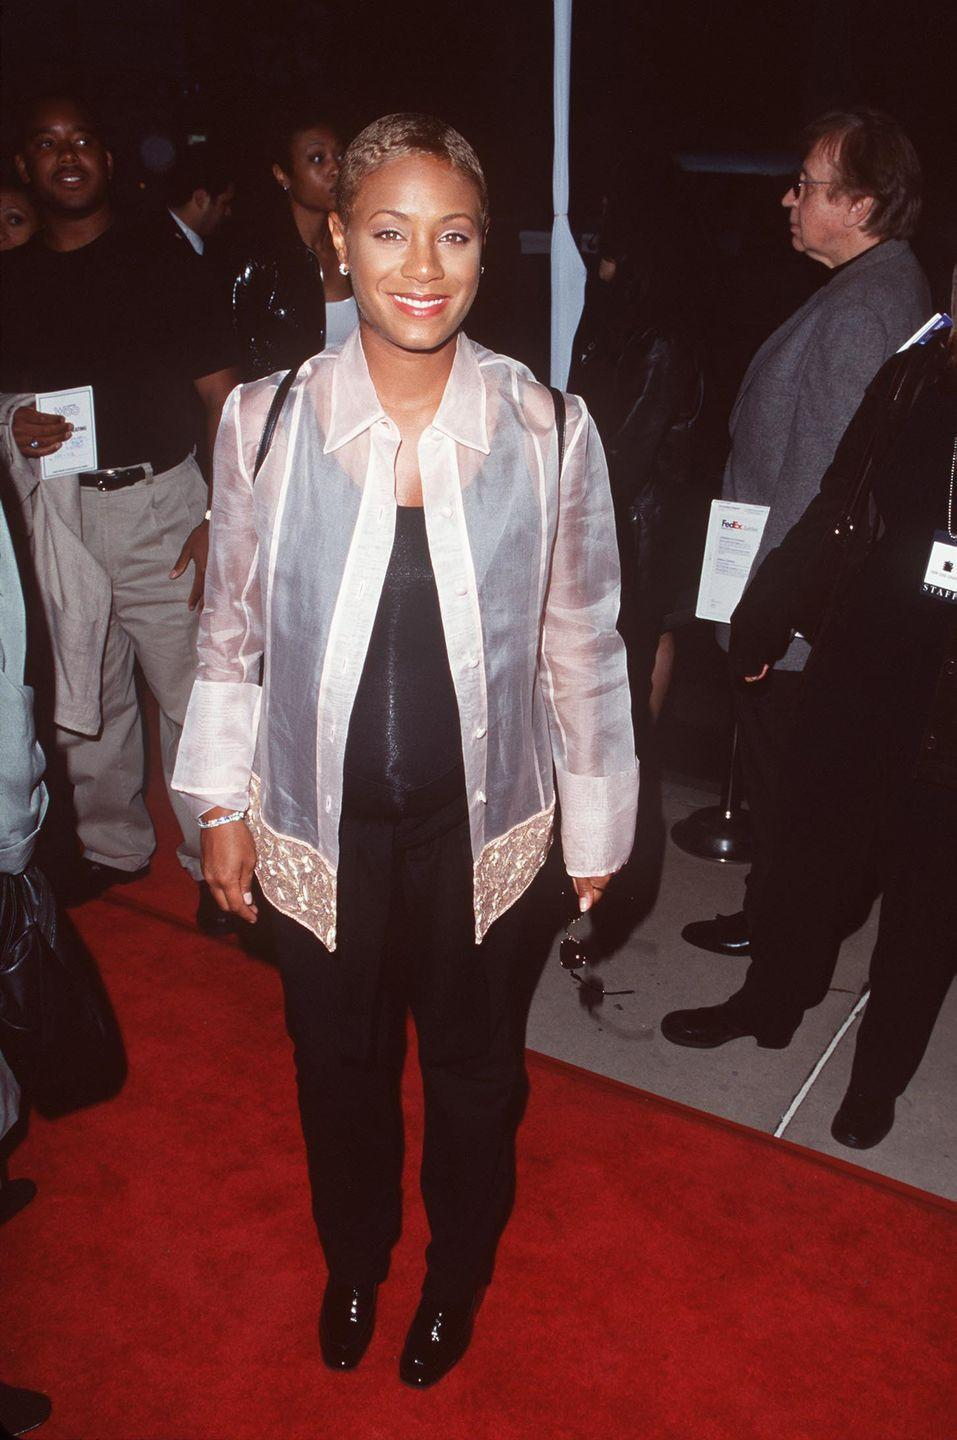 <p>We'll cut Jada some slack since she was pregnant at the <em>Woo</em> premiere, but still: this see-through white button down is just so '90s. You can't not comment on it!</p>